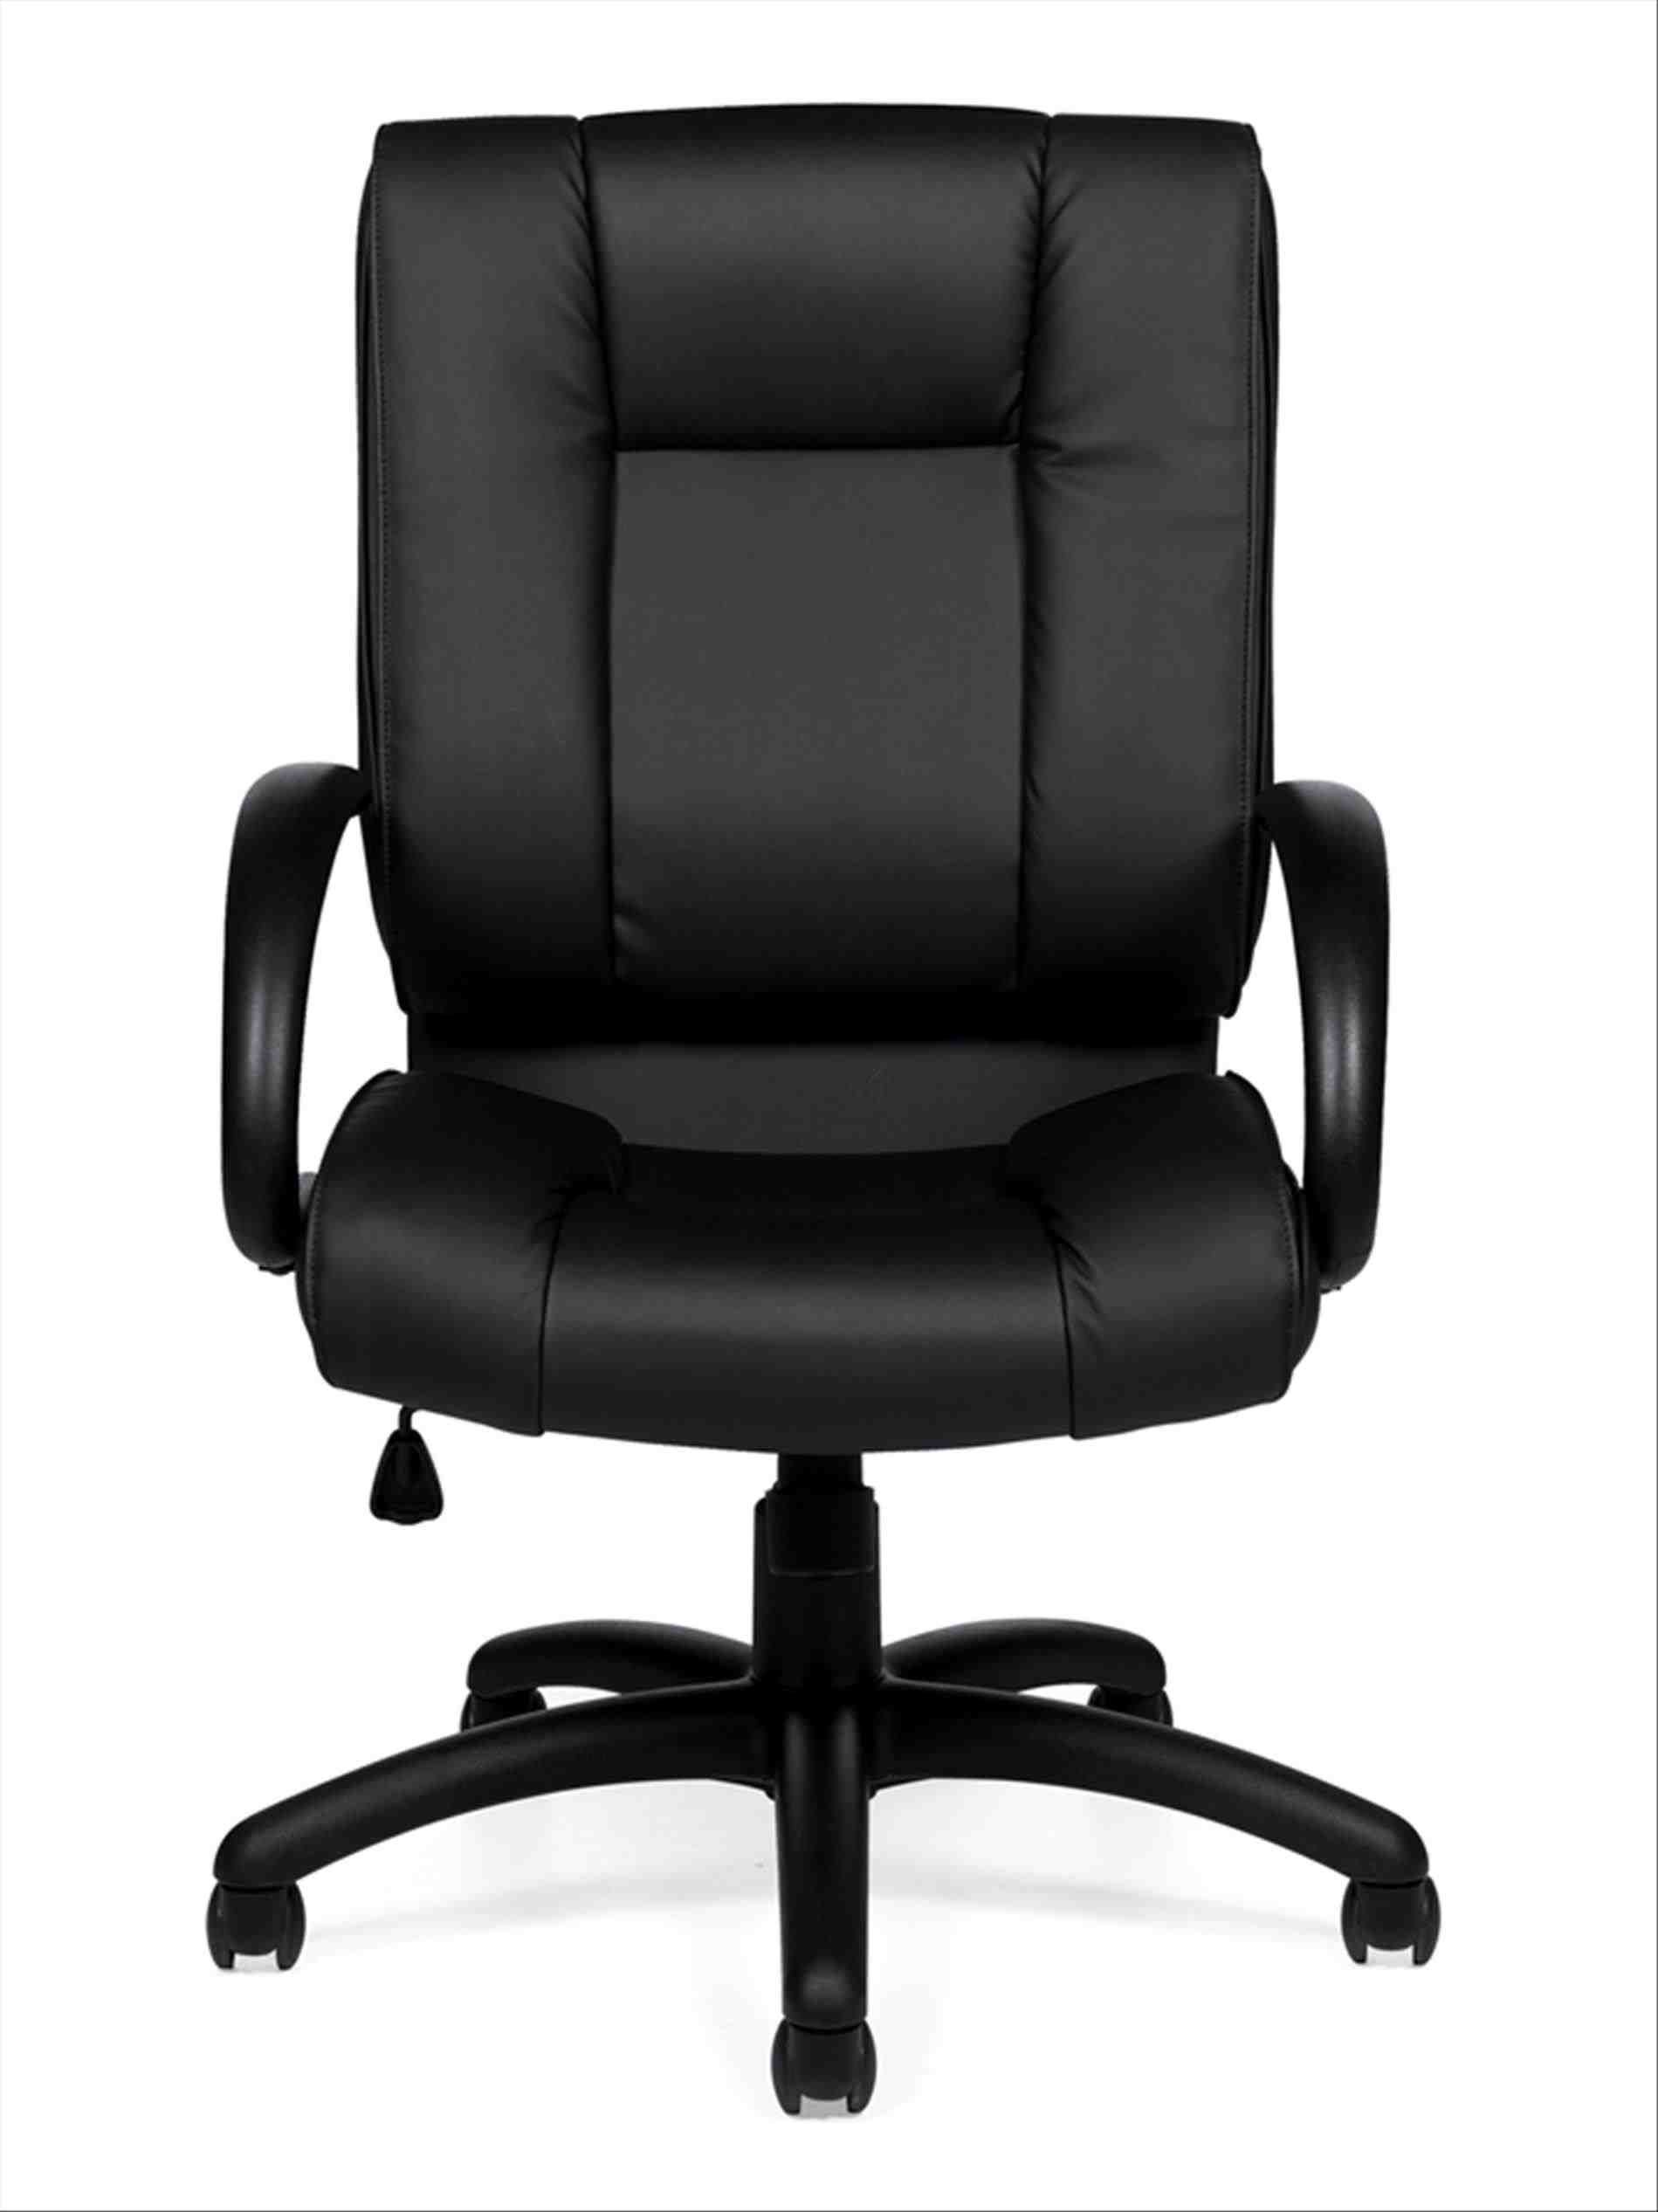 ergonomic chair godrej price cheap recliner chairs under 100 office front png http numsekongen